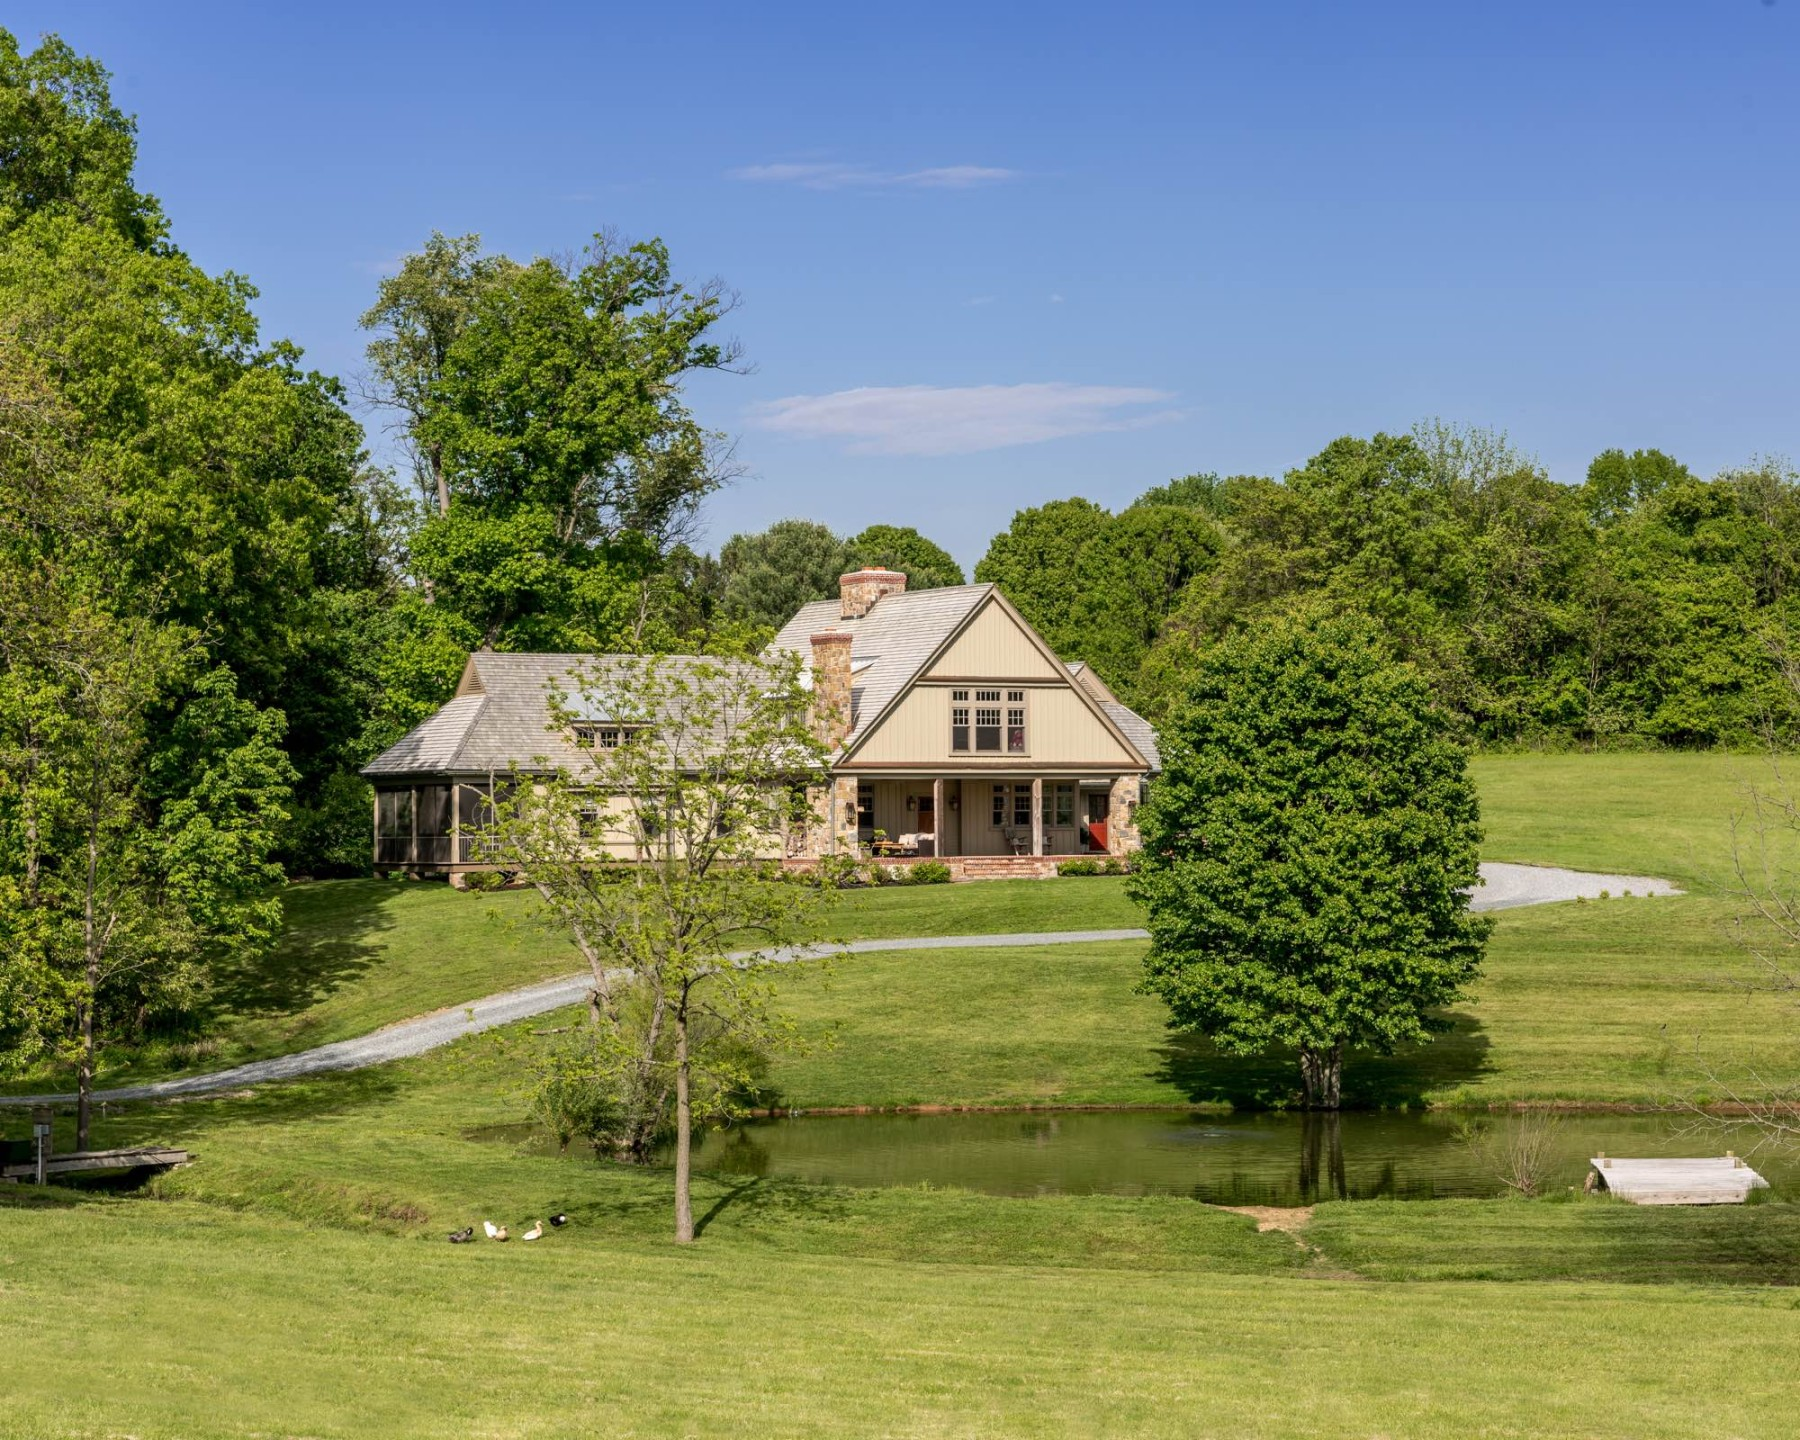 Chester County horse country kennett square pa duck pond house